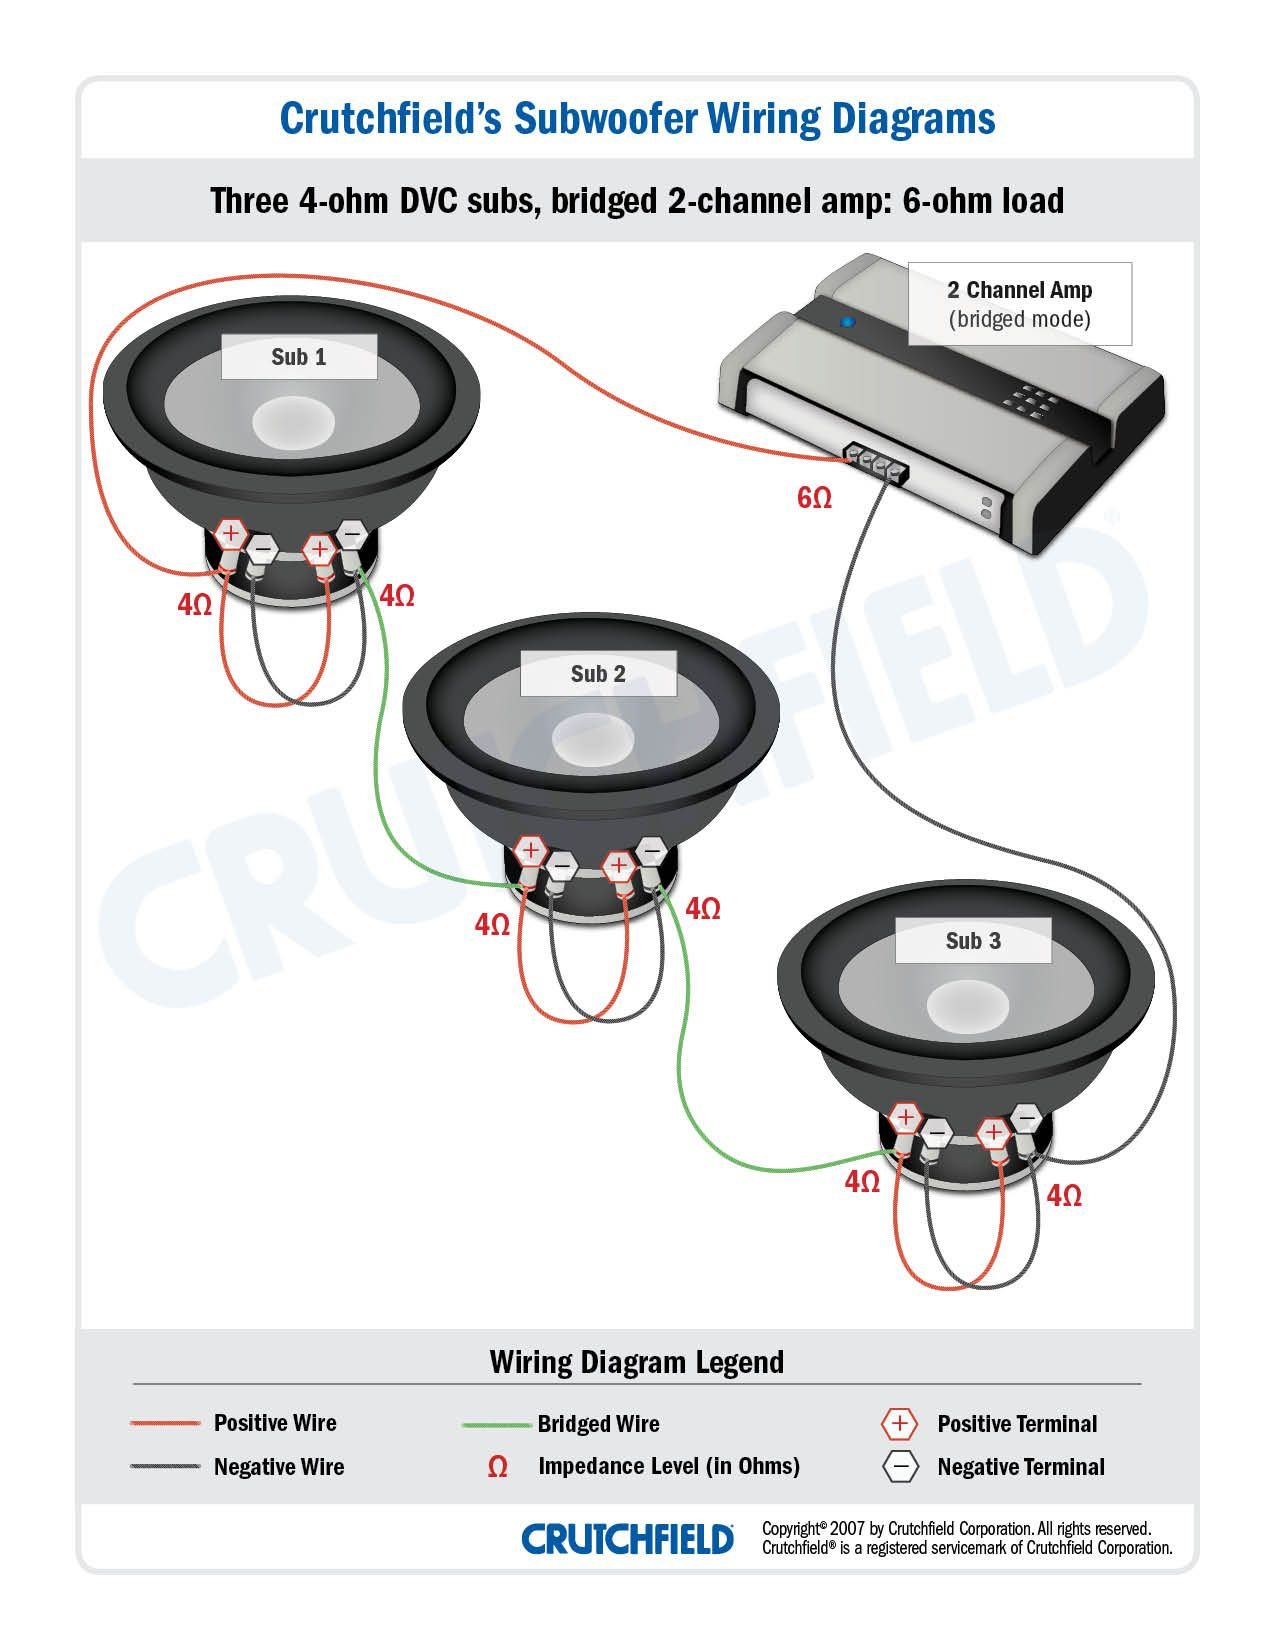 Free Wiring Diagrams For Cars 220v To 110v Diagram Top 10 Subwoofer Download 3 Dvc 4 Ohm 2 Ch And Dual 1